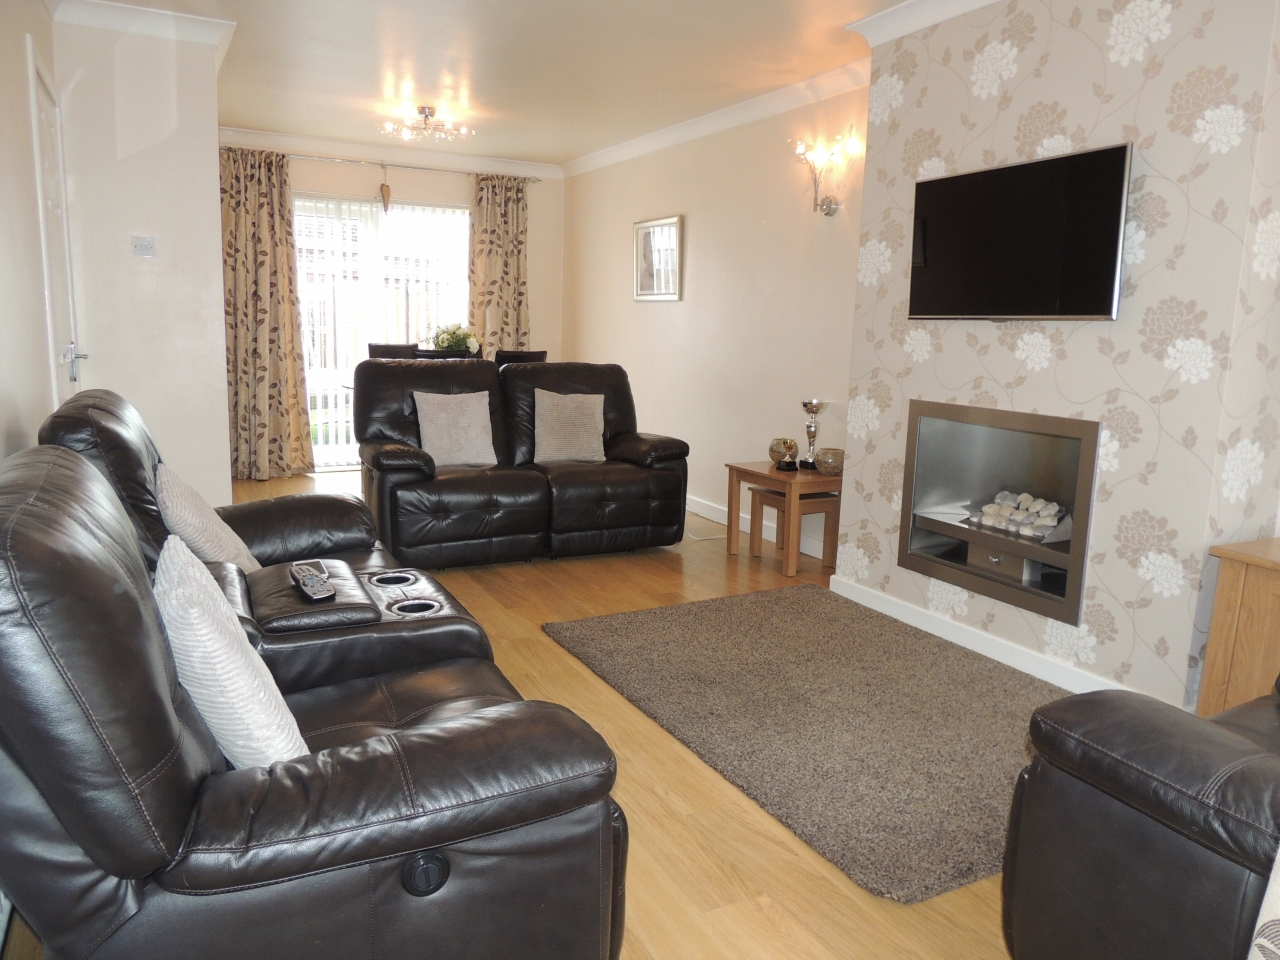 3 bedroom barn conversion house To Let in Wigan - Property photograph